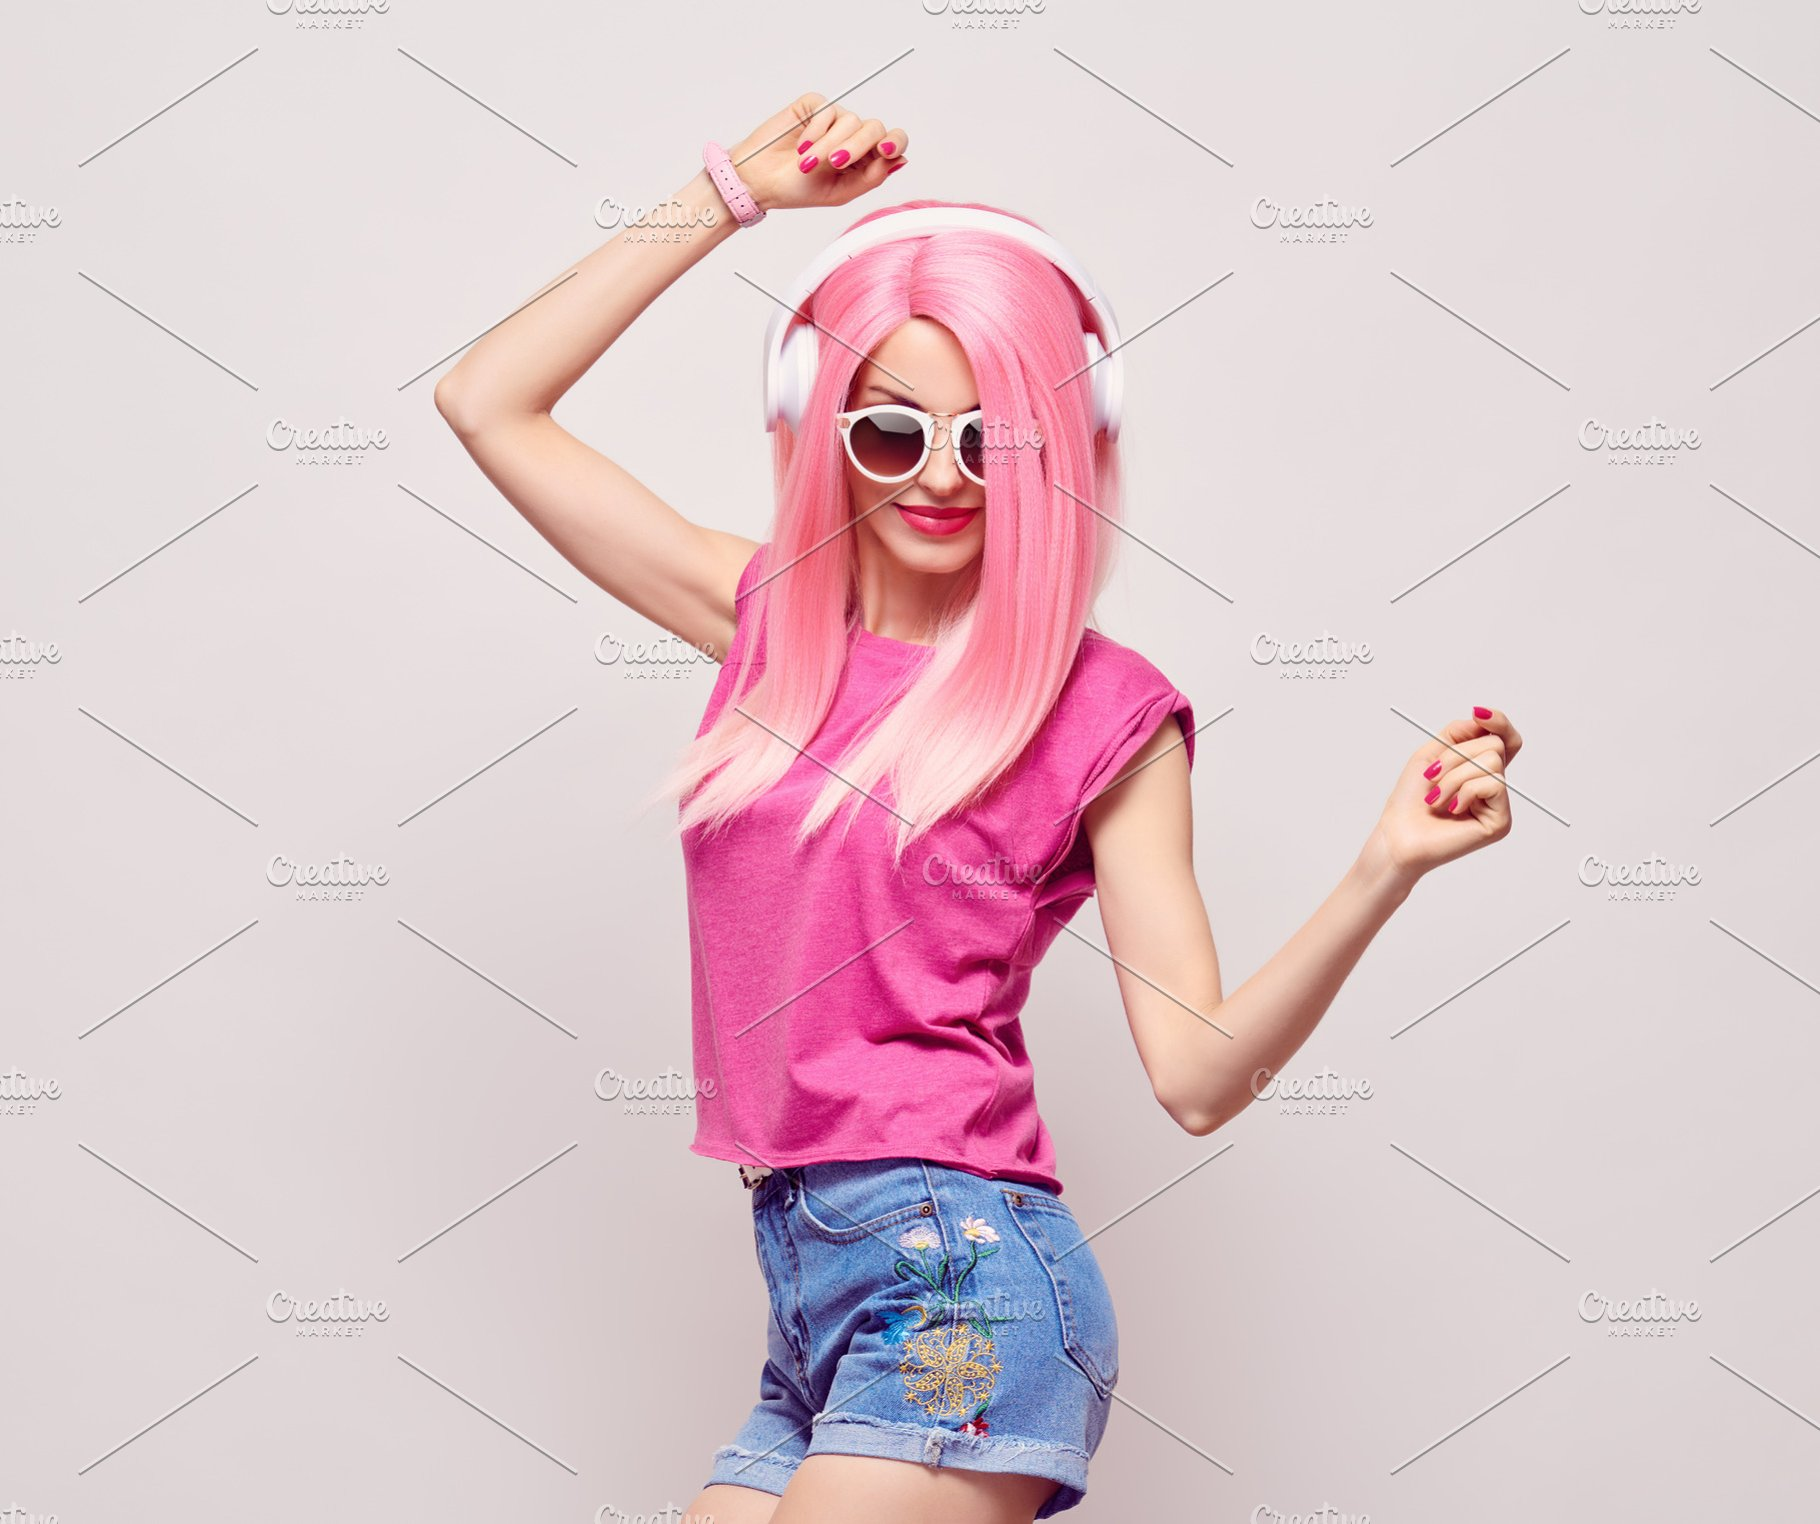 DJ Girl Hipster with Pink Fashion Hairstyle Dance